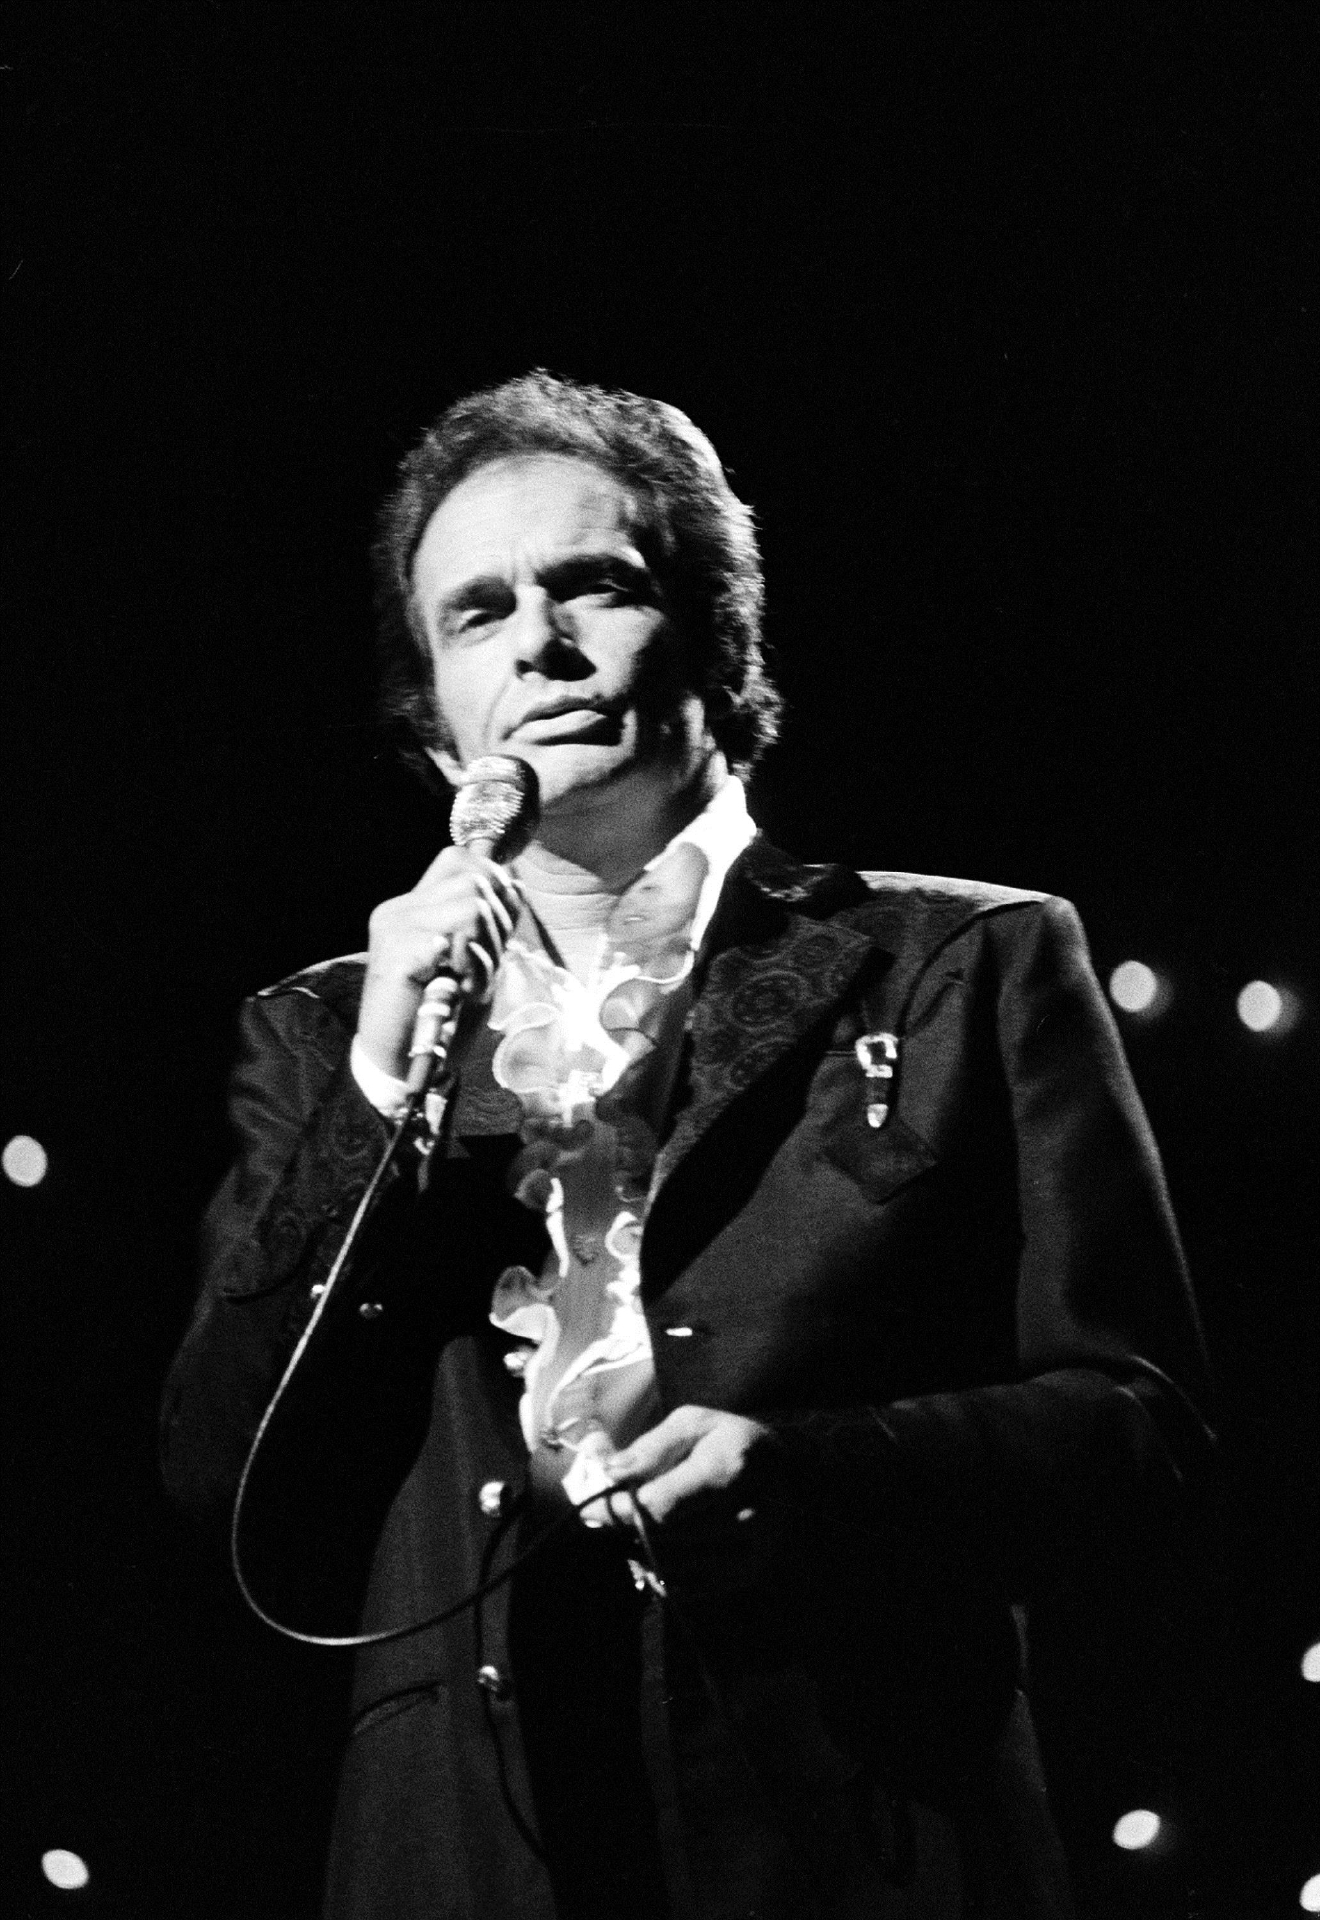 In this Oct. 8, 1977 file photo, Merle Haggard performs at the Country Music Association Awards in Nashville, Tenn. Haggard died of pneumonia, Wednesday, April 6, 2016, in Palo Cedro, Calif. He was 79. (AP Photo/Mark Humphrey, File)